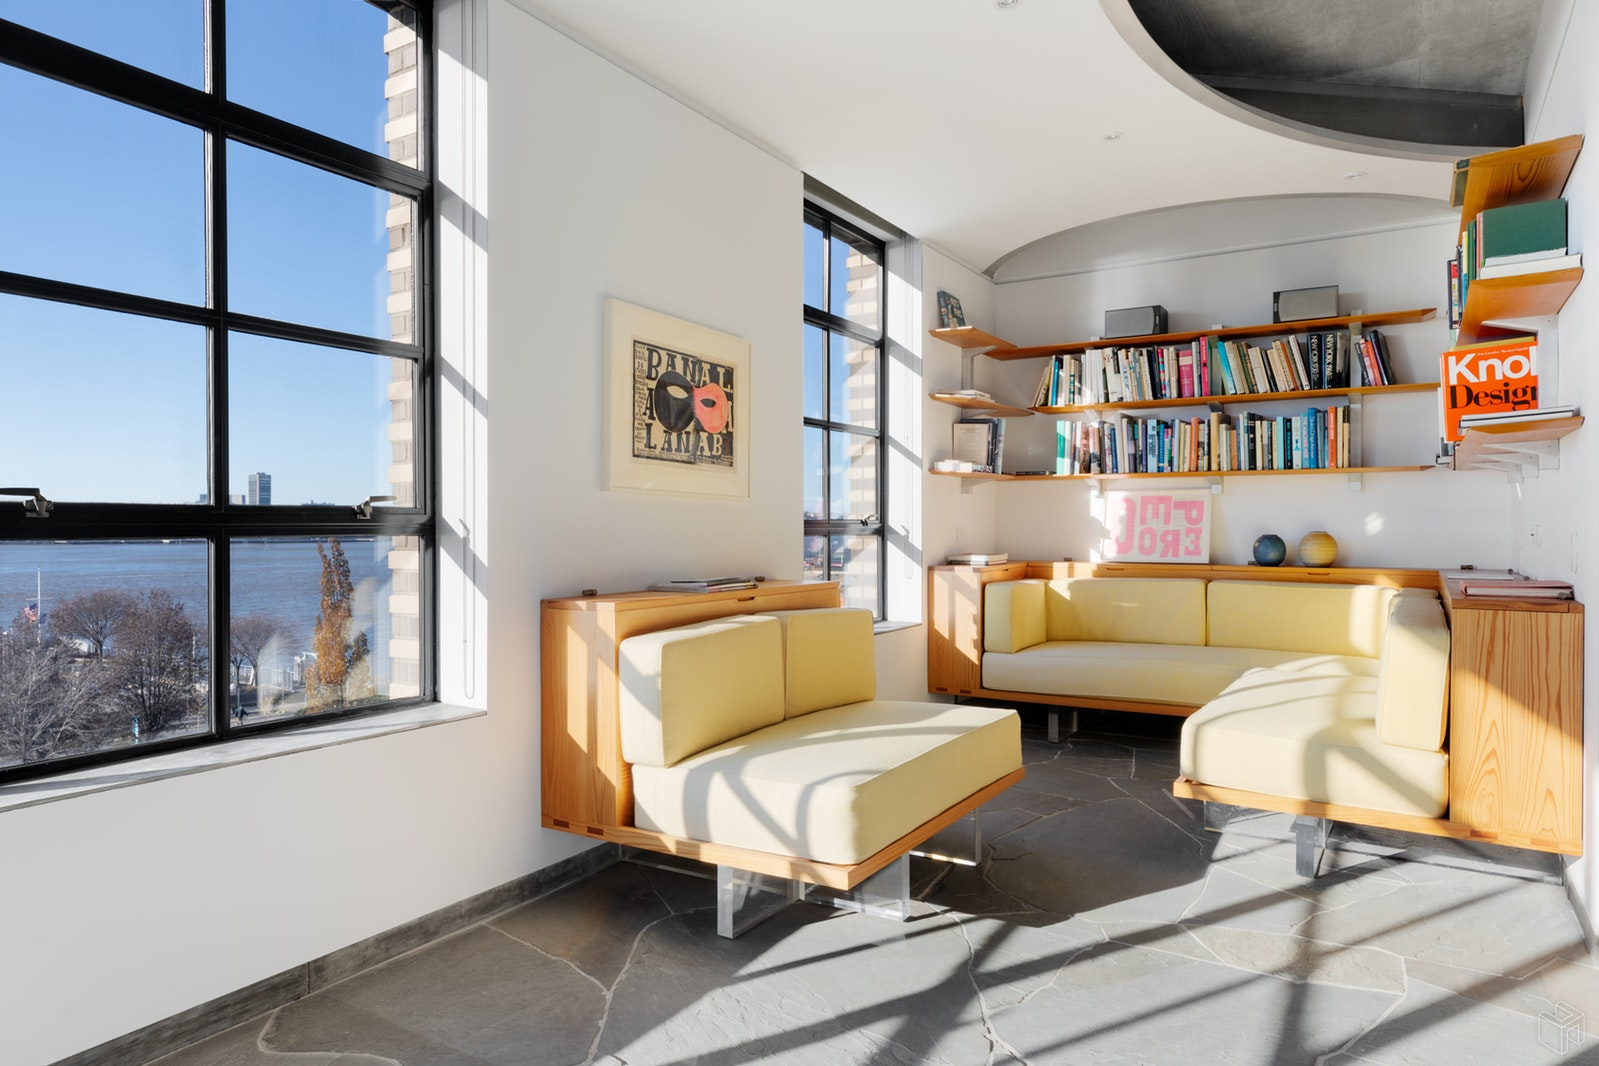 495 West Street, West Village, NYC, 10014, $10,500,000, Property For Sale, Halstead Real Estate, Photo 5